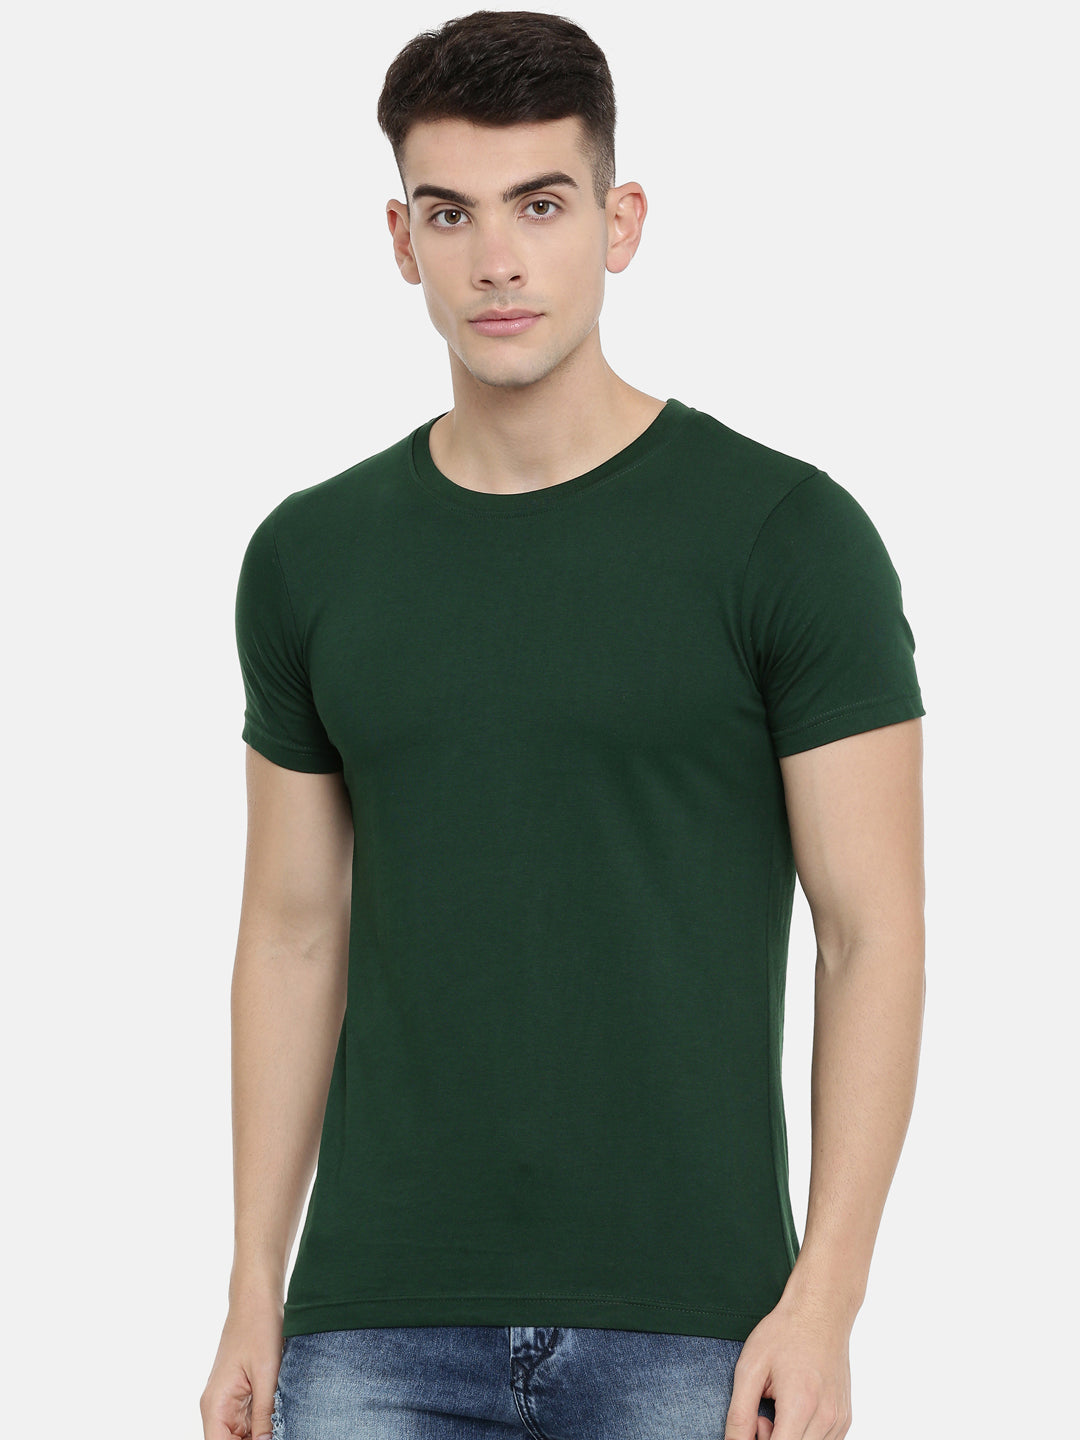 Lush Green Half Sleeve Round Neck T-shirt